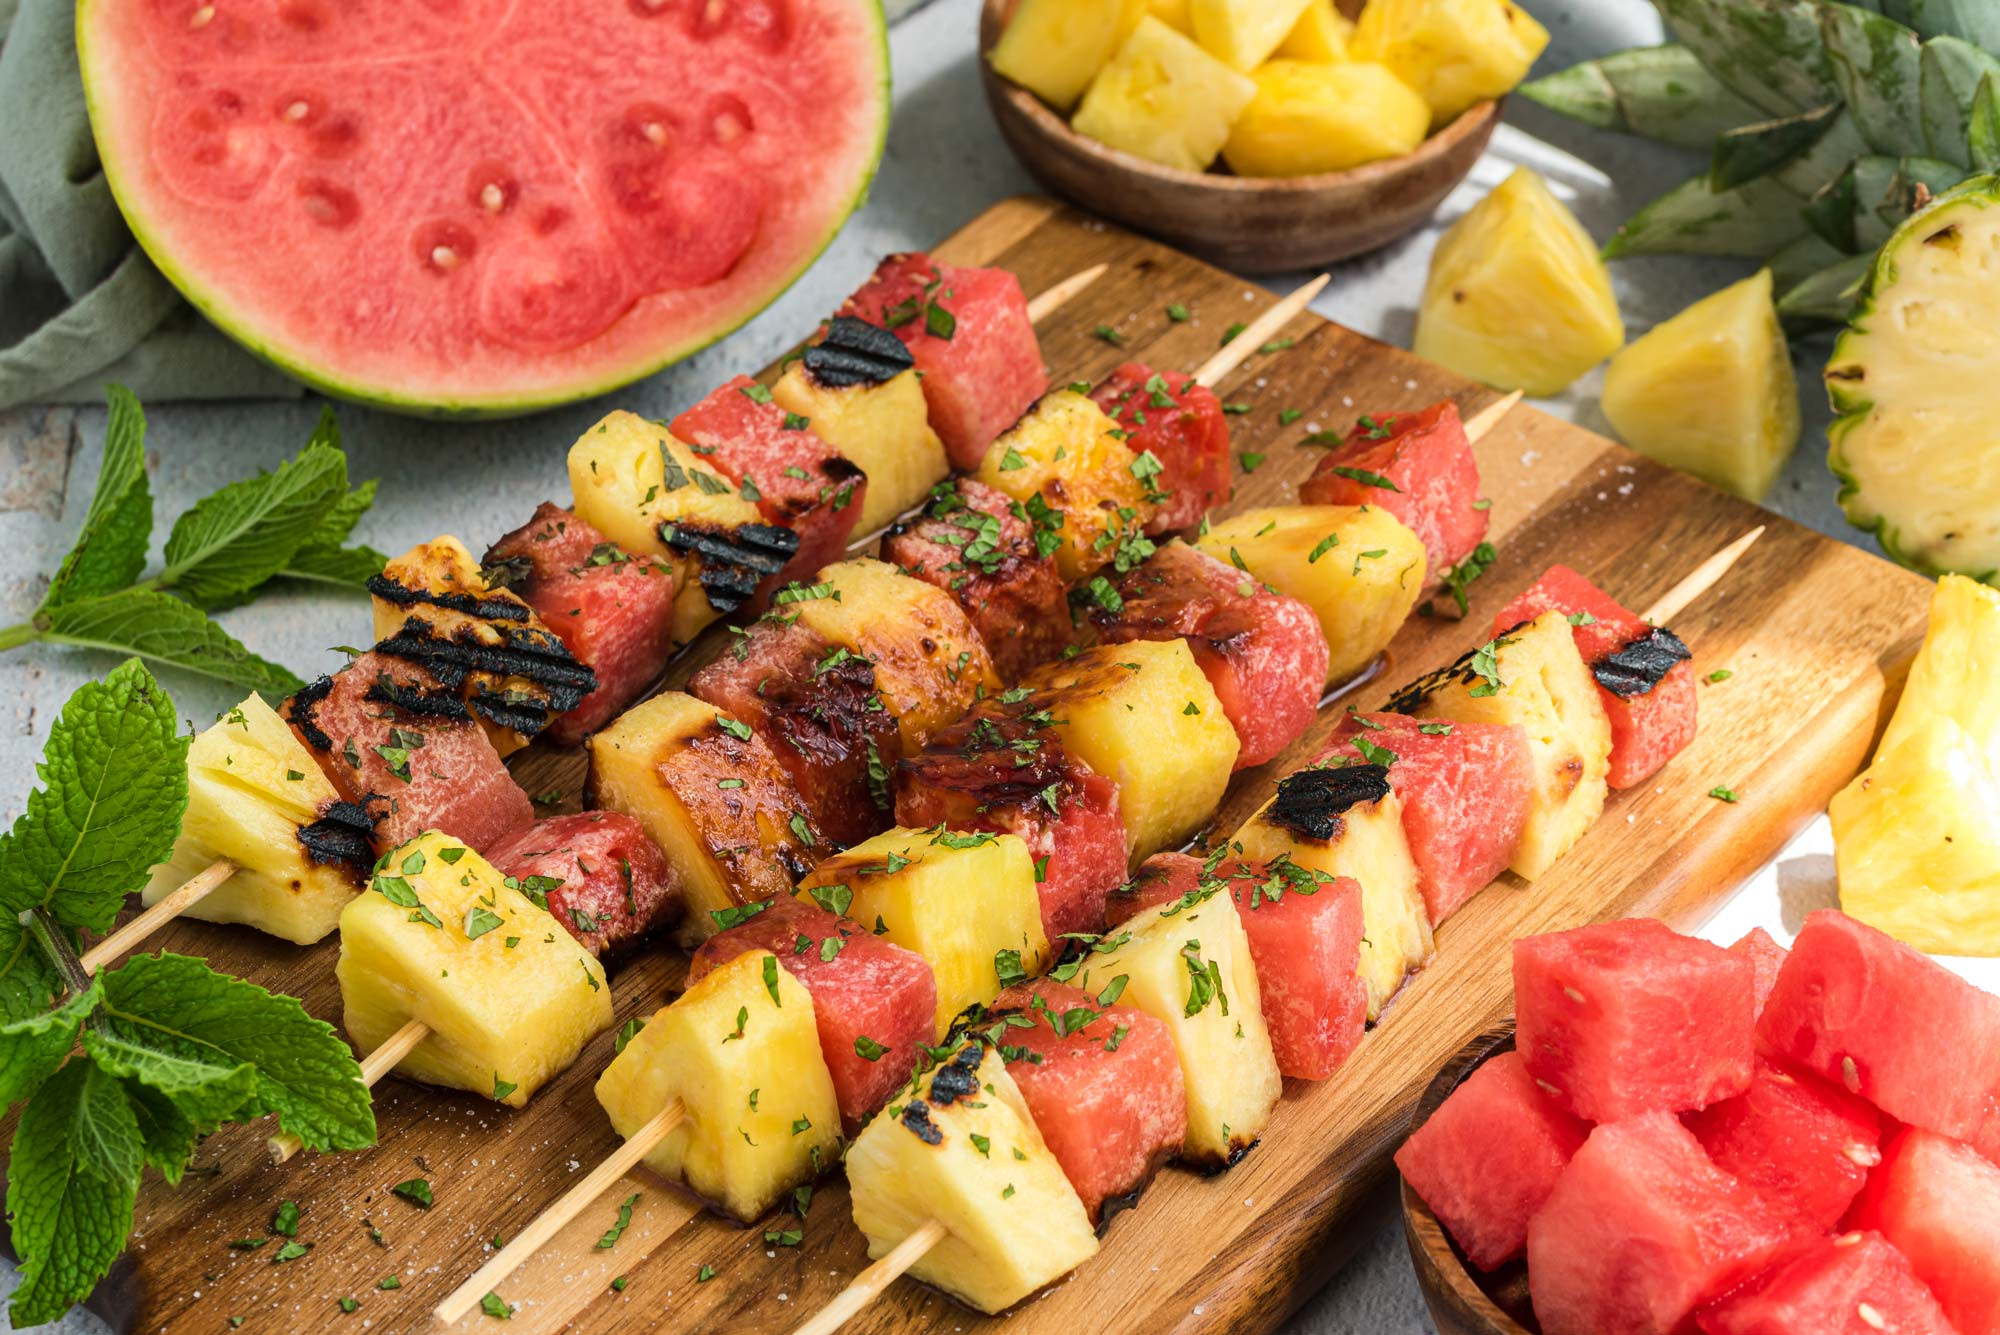 grilled watermelon and pineapple skewers on board